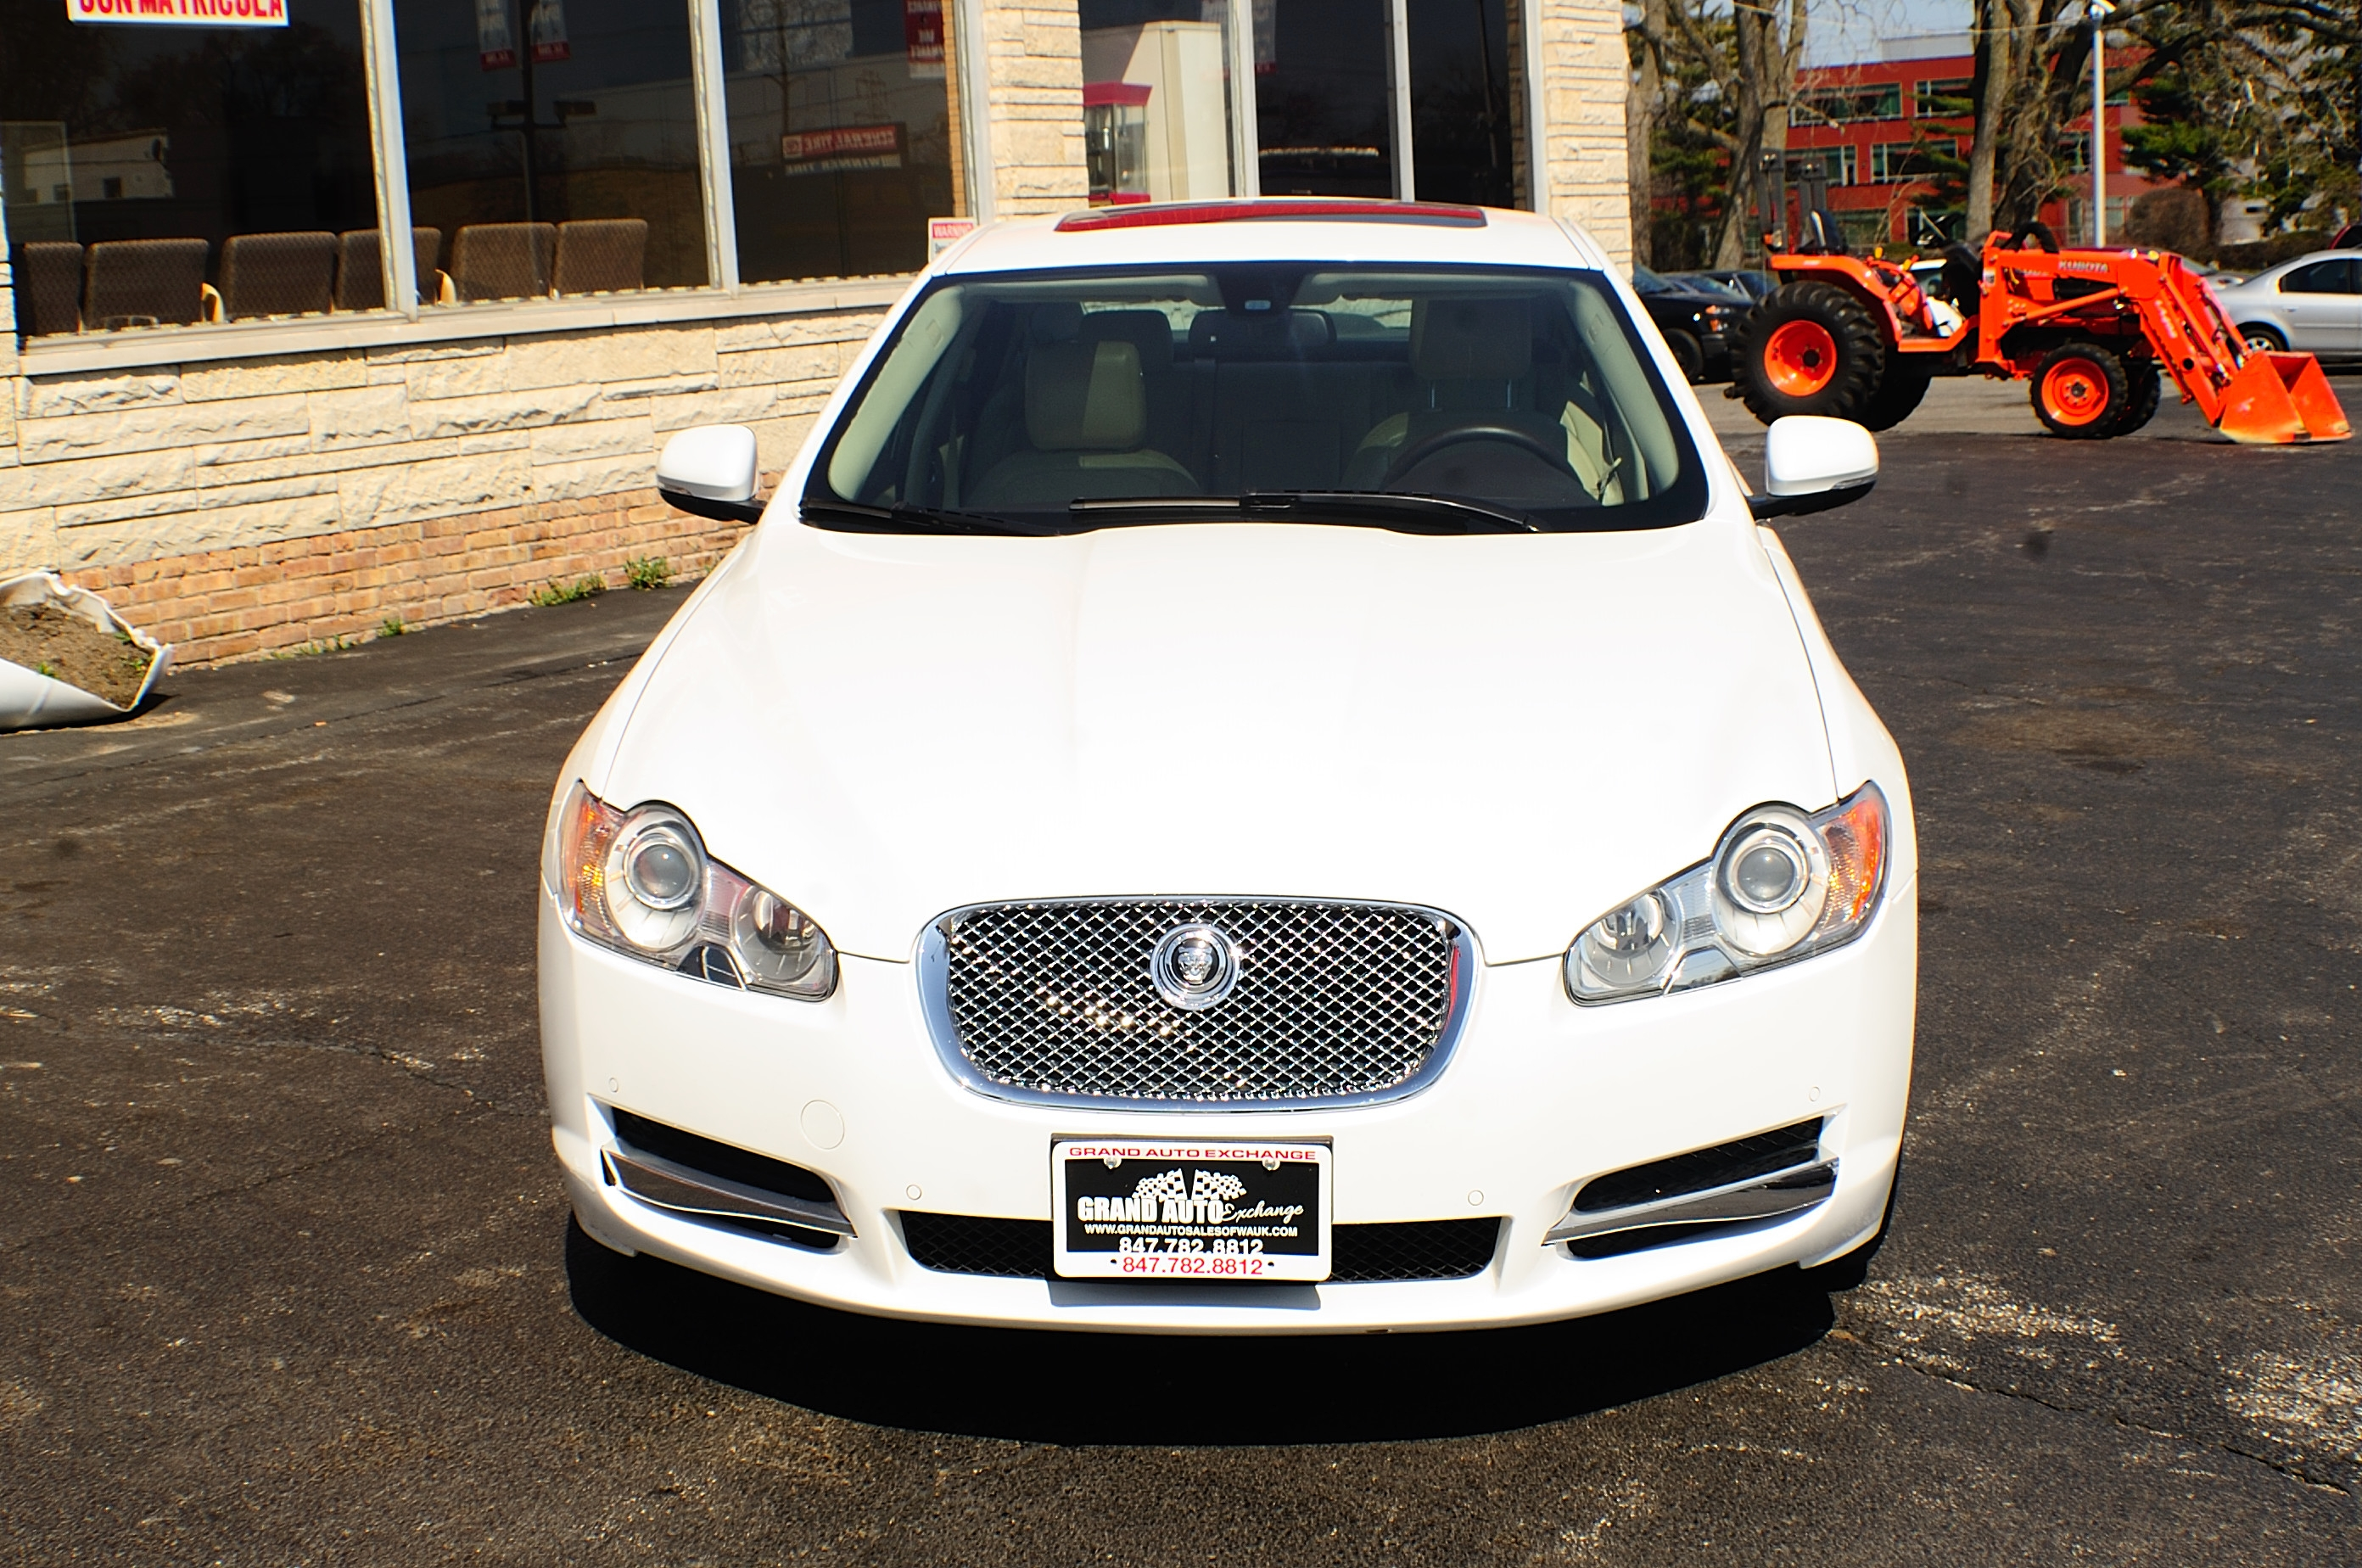 2011 Jaguar XF White sedan Used Car Sale Gurnee Kenosha Mchenry